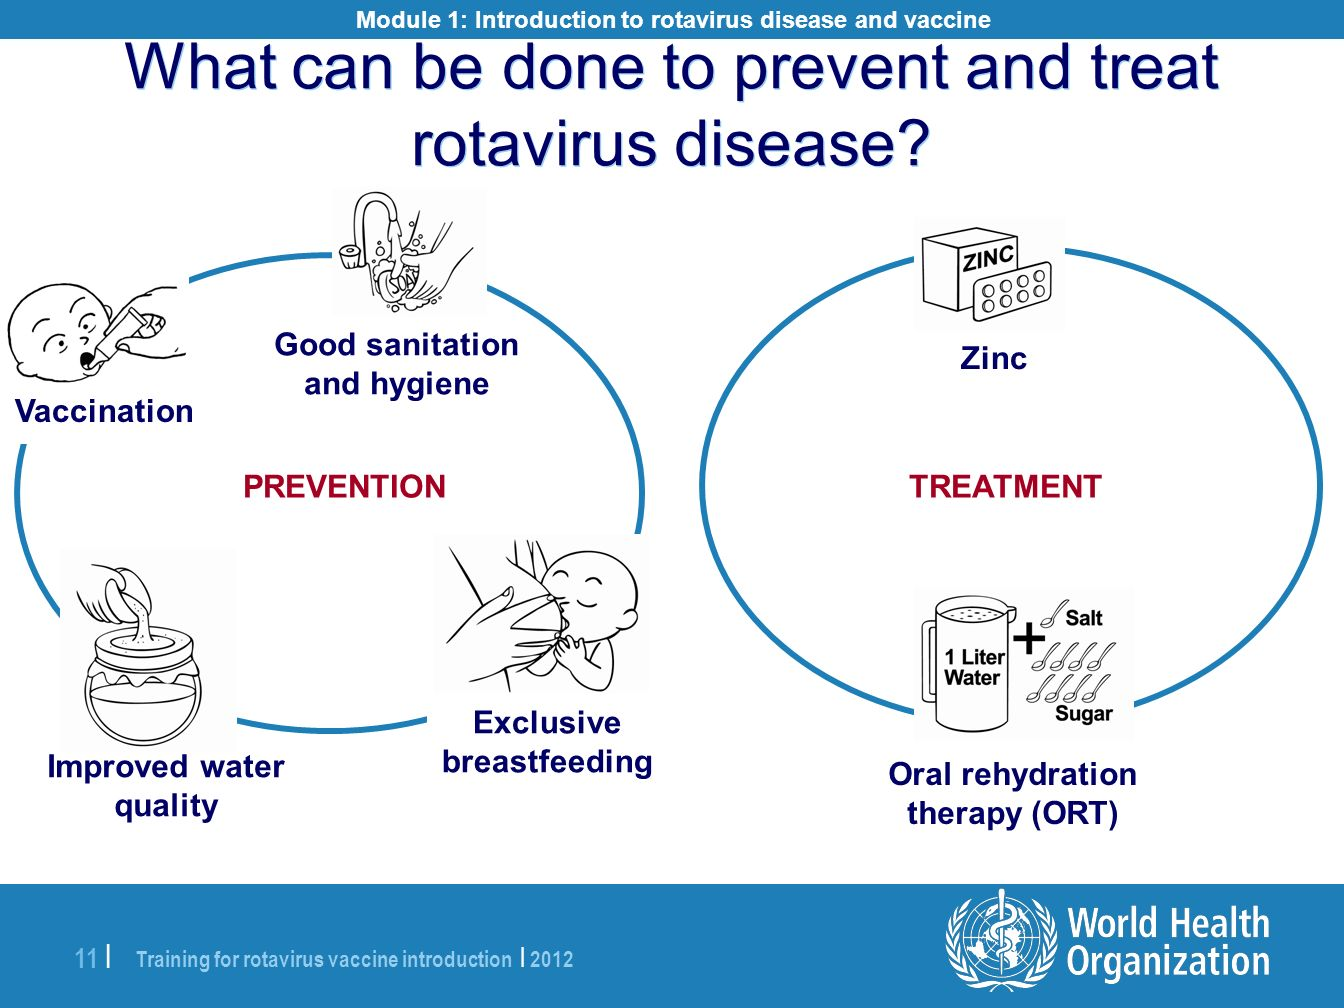 What can be done to prevent and treat rotavirus disease